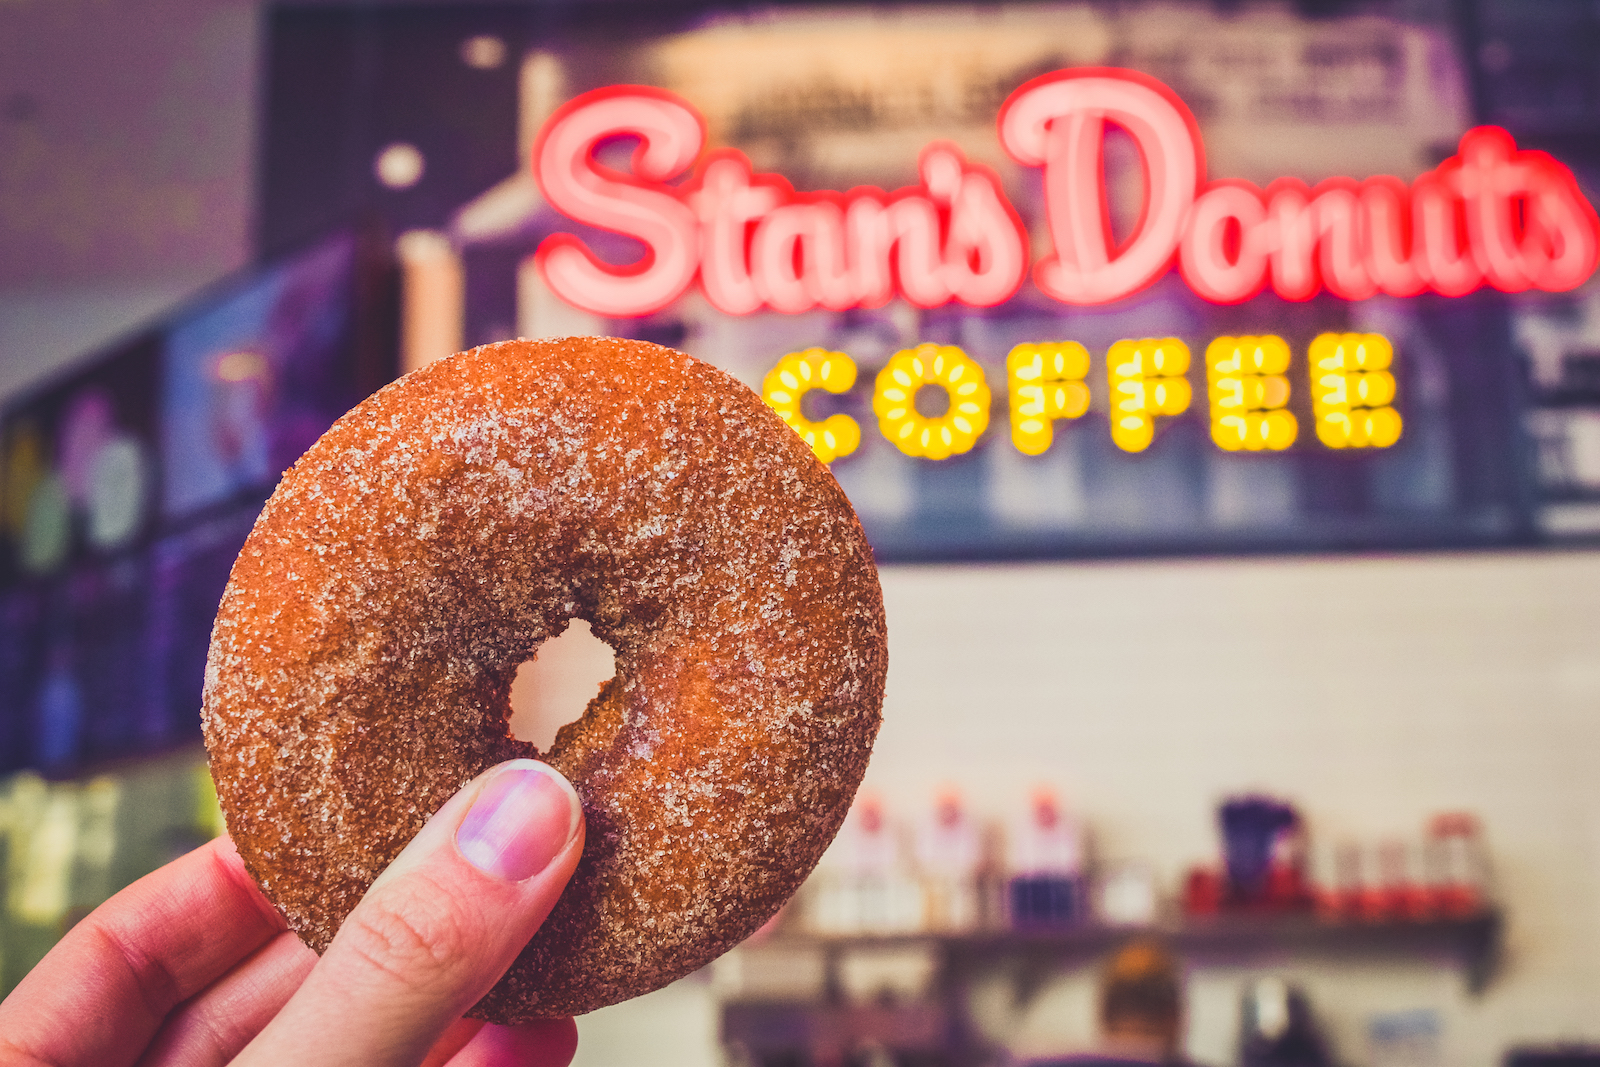 A First Timers Weekend City Guide to Chicago Stan's Donuts Food Foodie Travel guide to chicago illinois blog what to do what to see where to go 3 days-104